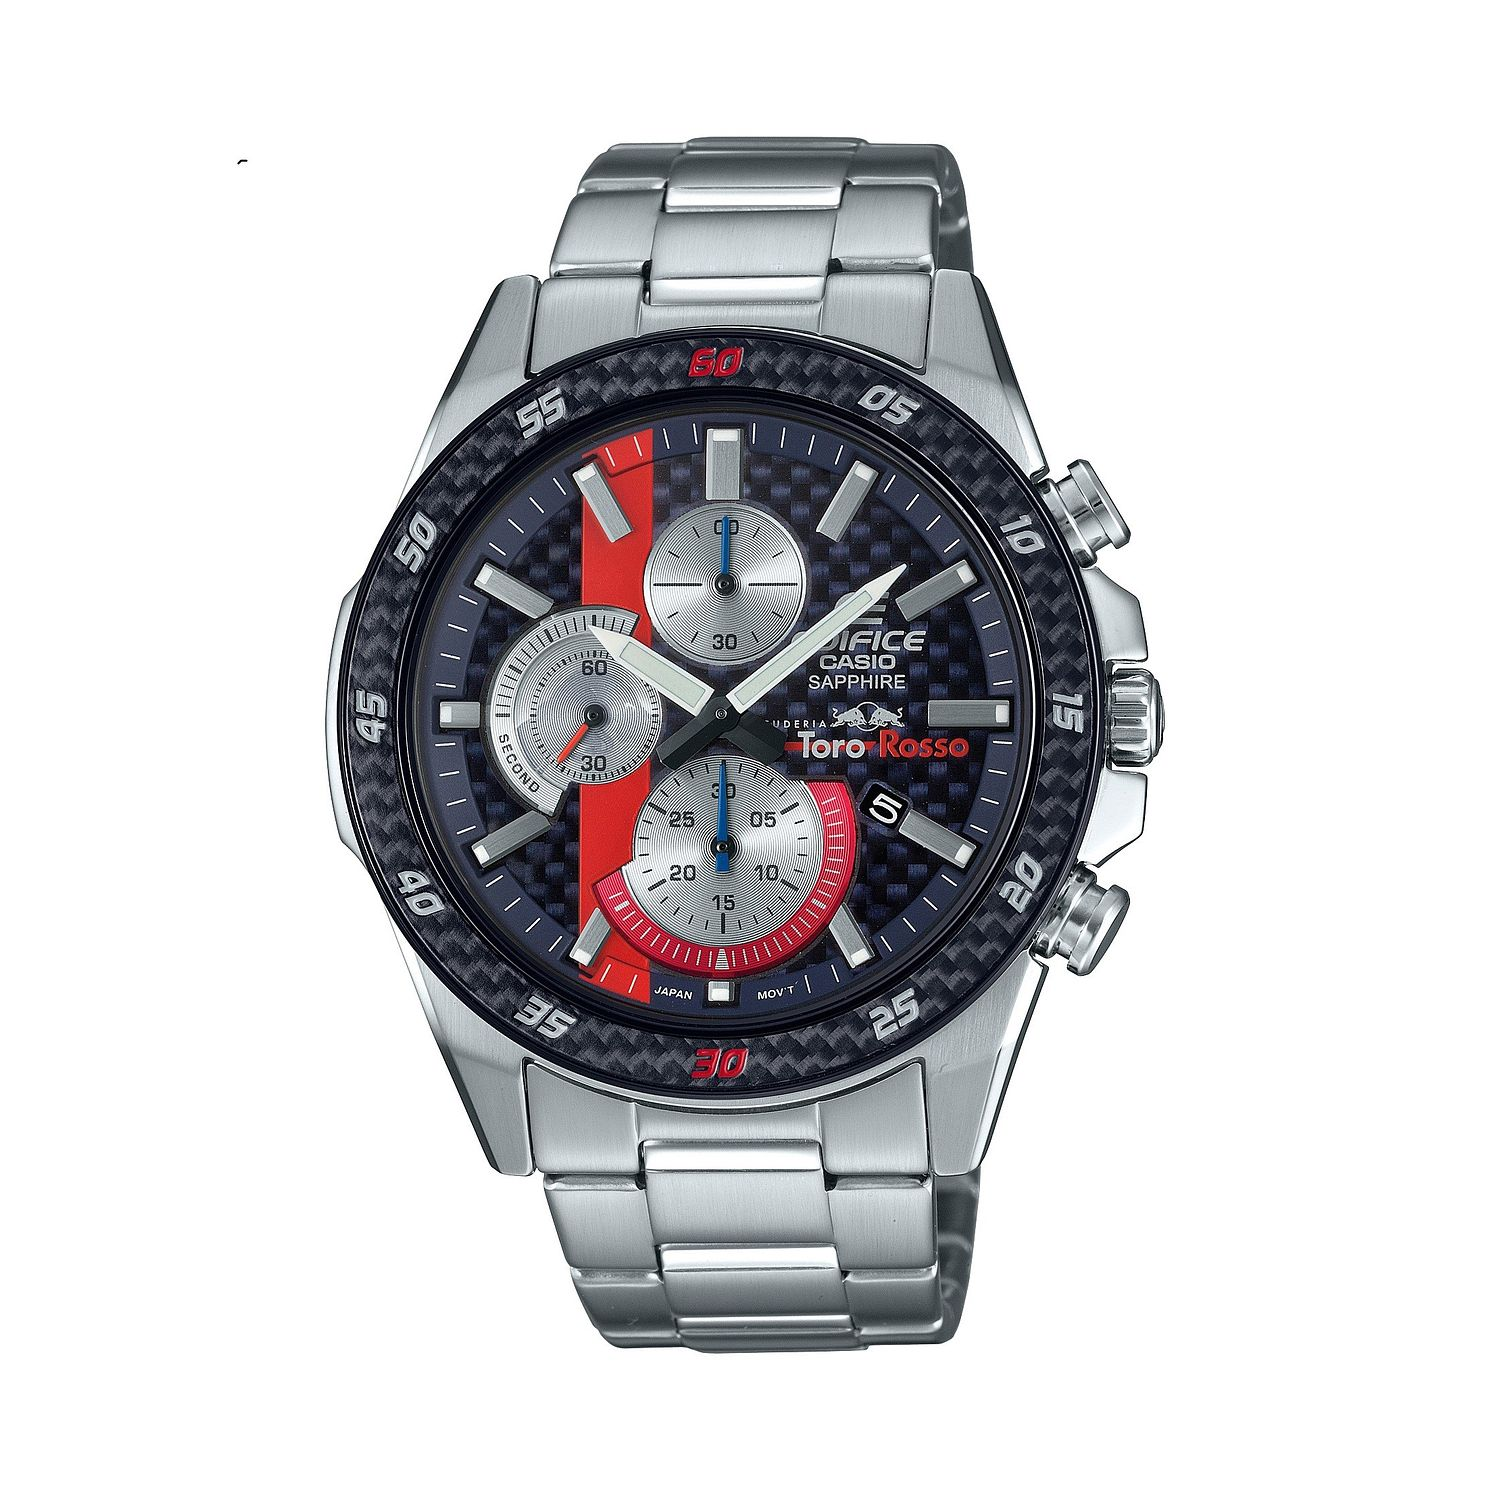 Casio Edifice Scuderia Toro Rosso Limited Edition Watch - Product number 5089581